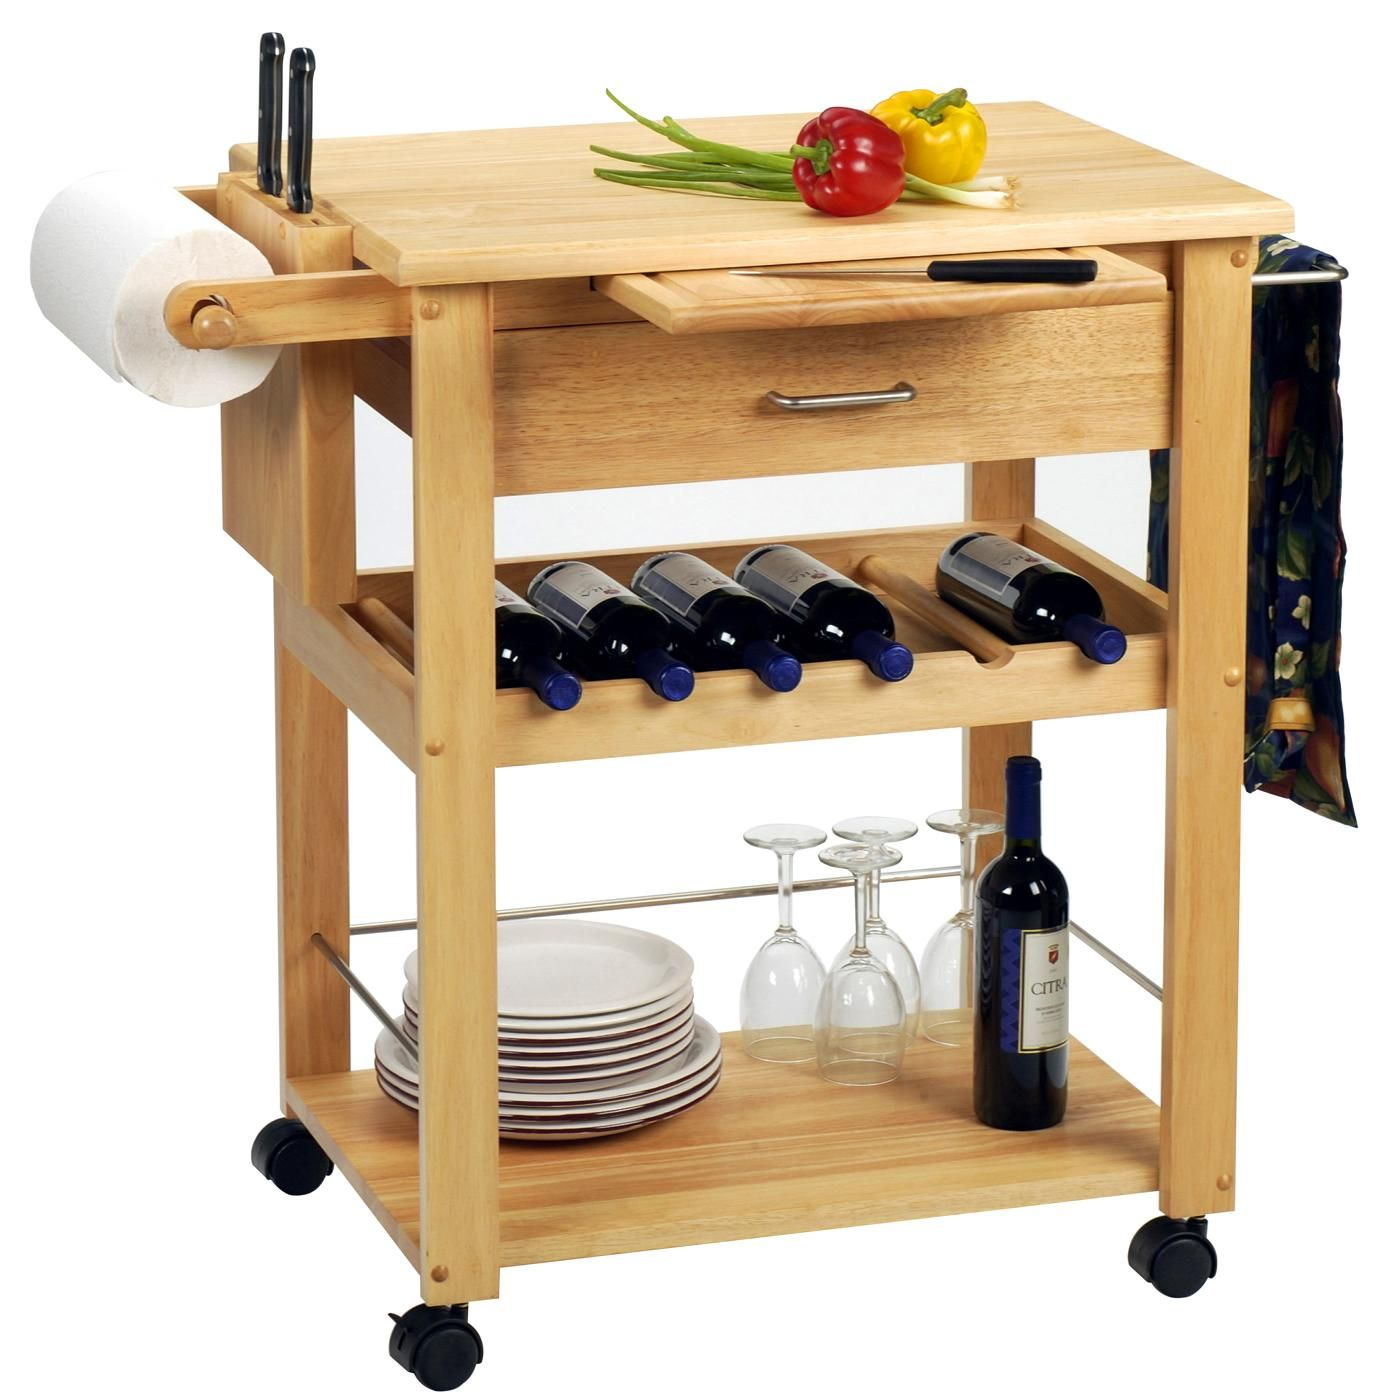 Winsome Deluxe Kitchen Cart By OJ Commerce 83634   $242.04